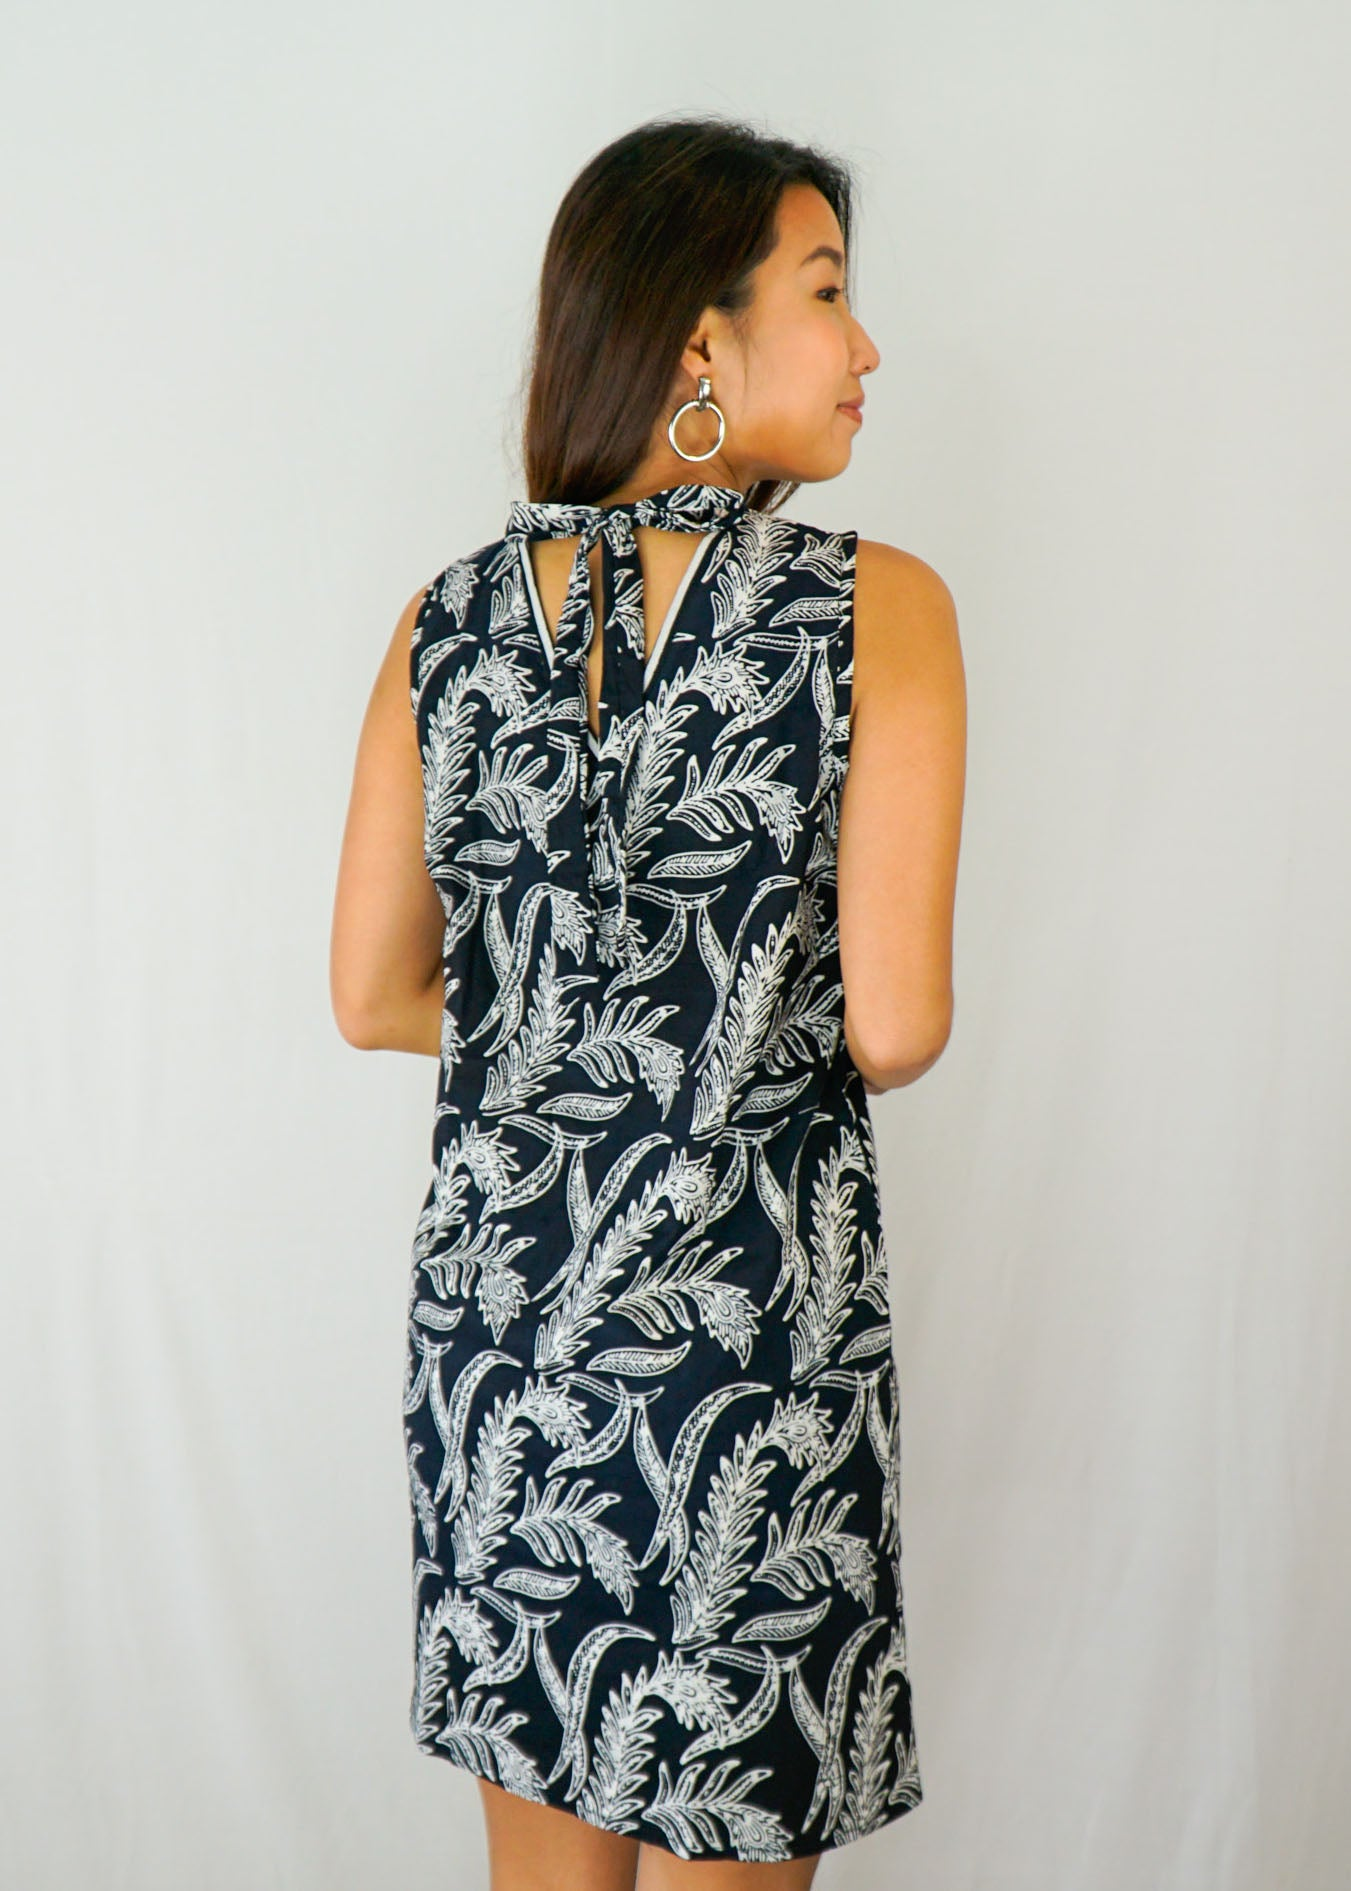 Joli Ribbon Tie-Back Dress in Leafy Black